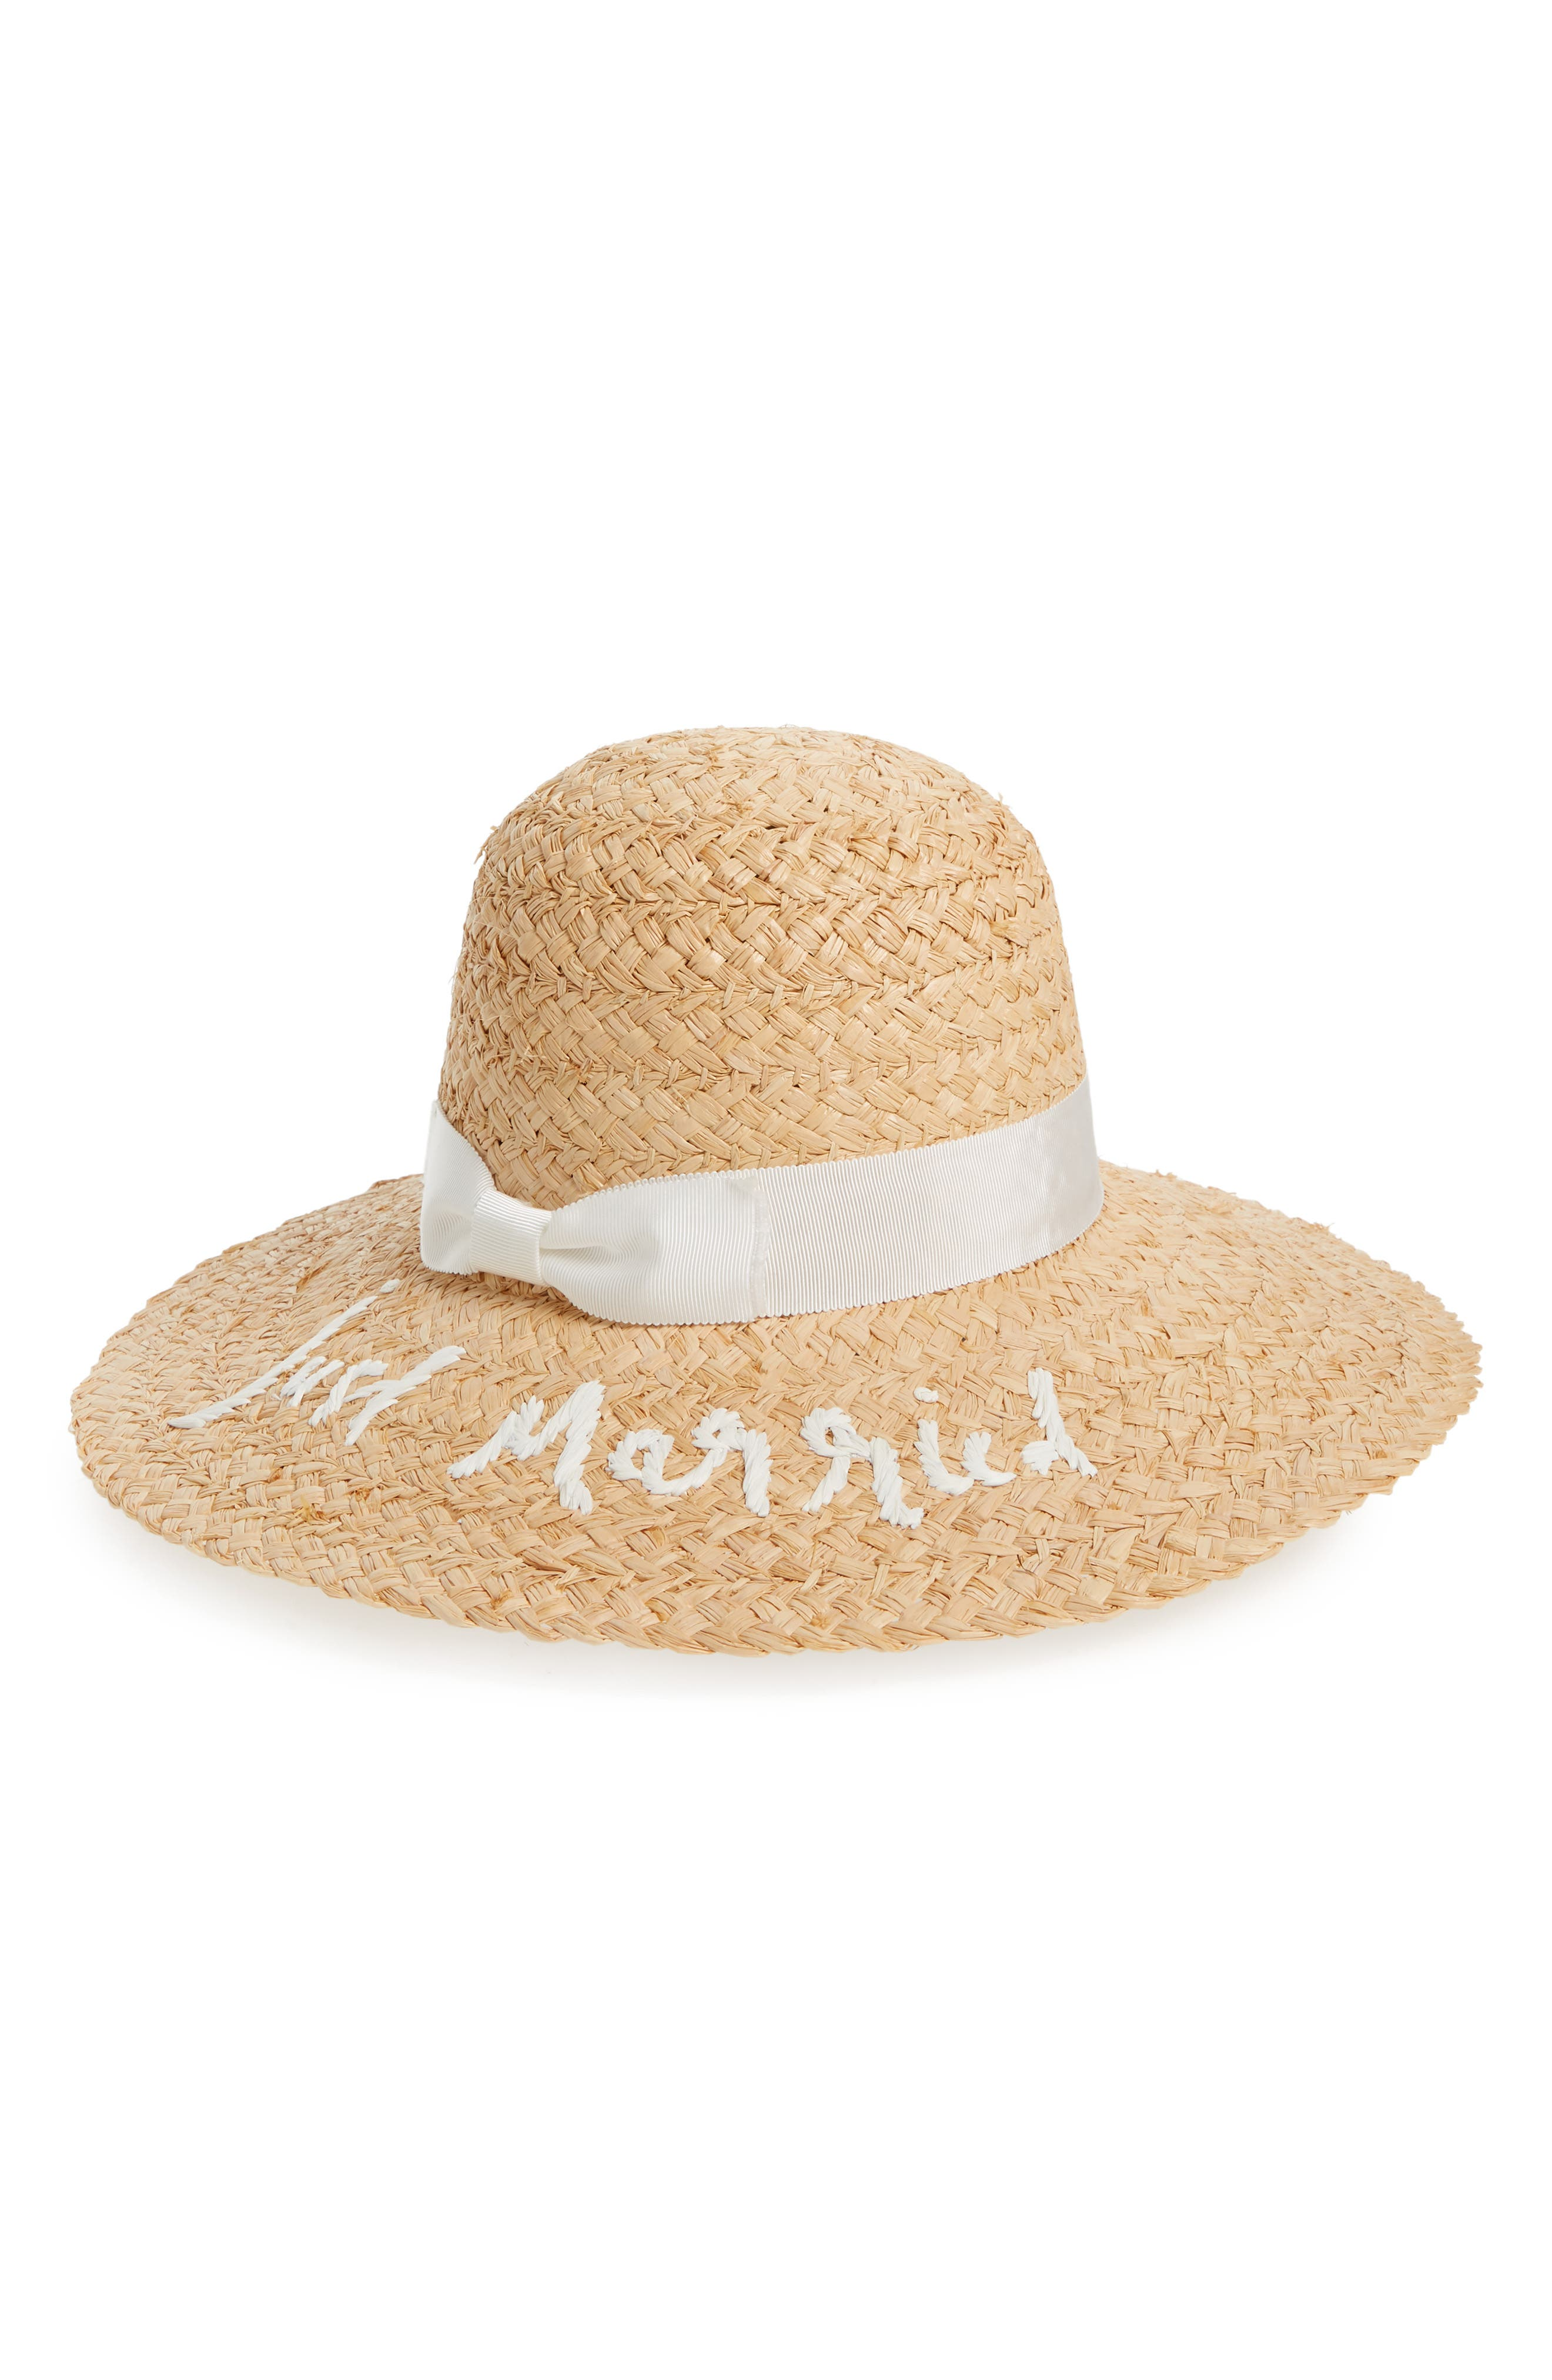 Alternate Image 1 Selected - kate spade new york just married straw hat